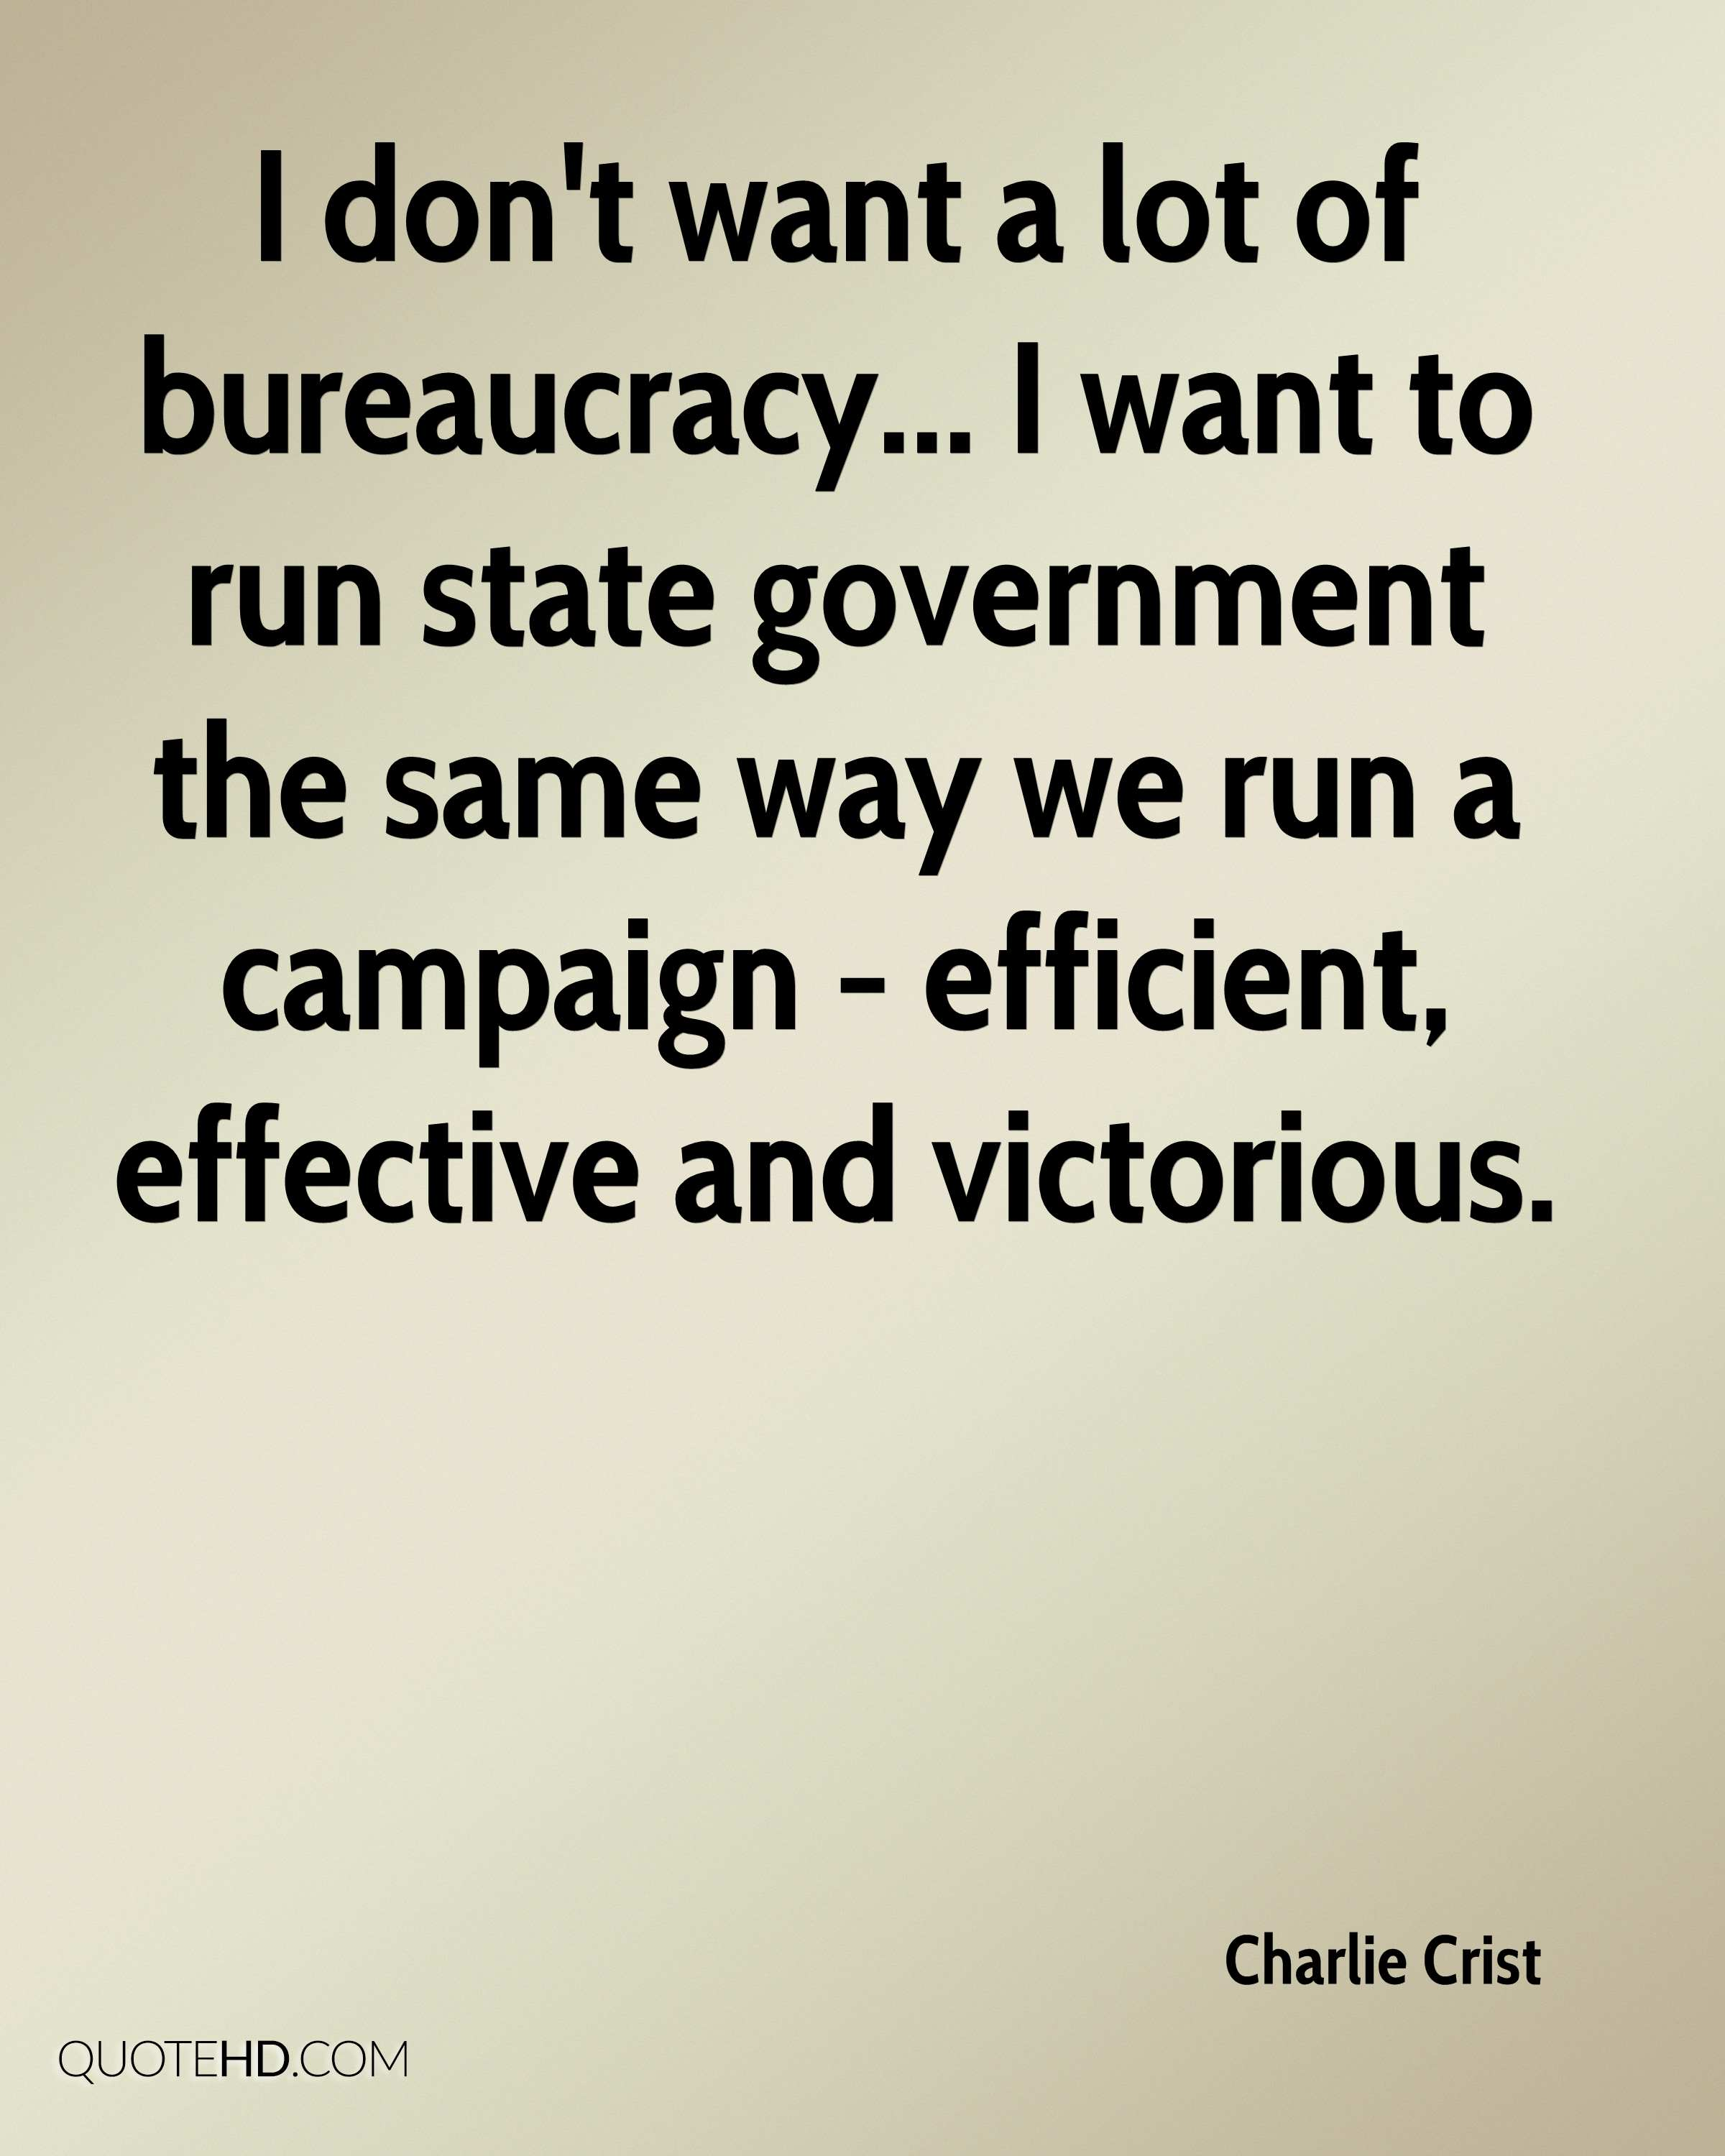 I don't want a lot of bureaucracy... I want to run state government the same way we run a campaign - efficient, effective and victorious.